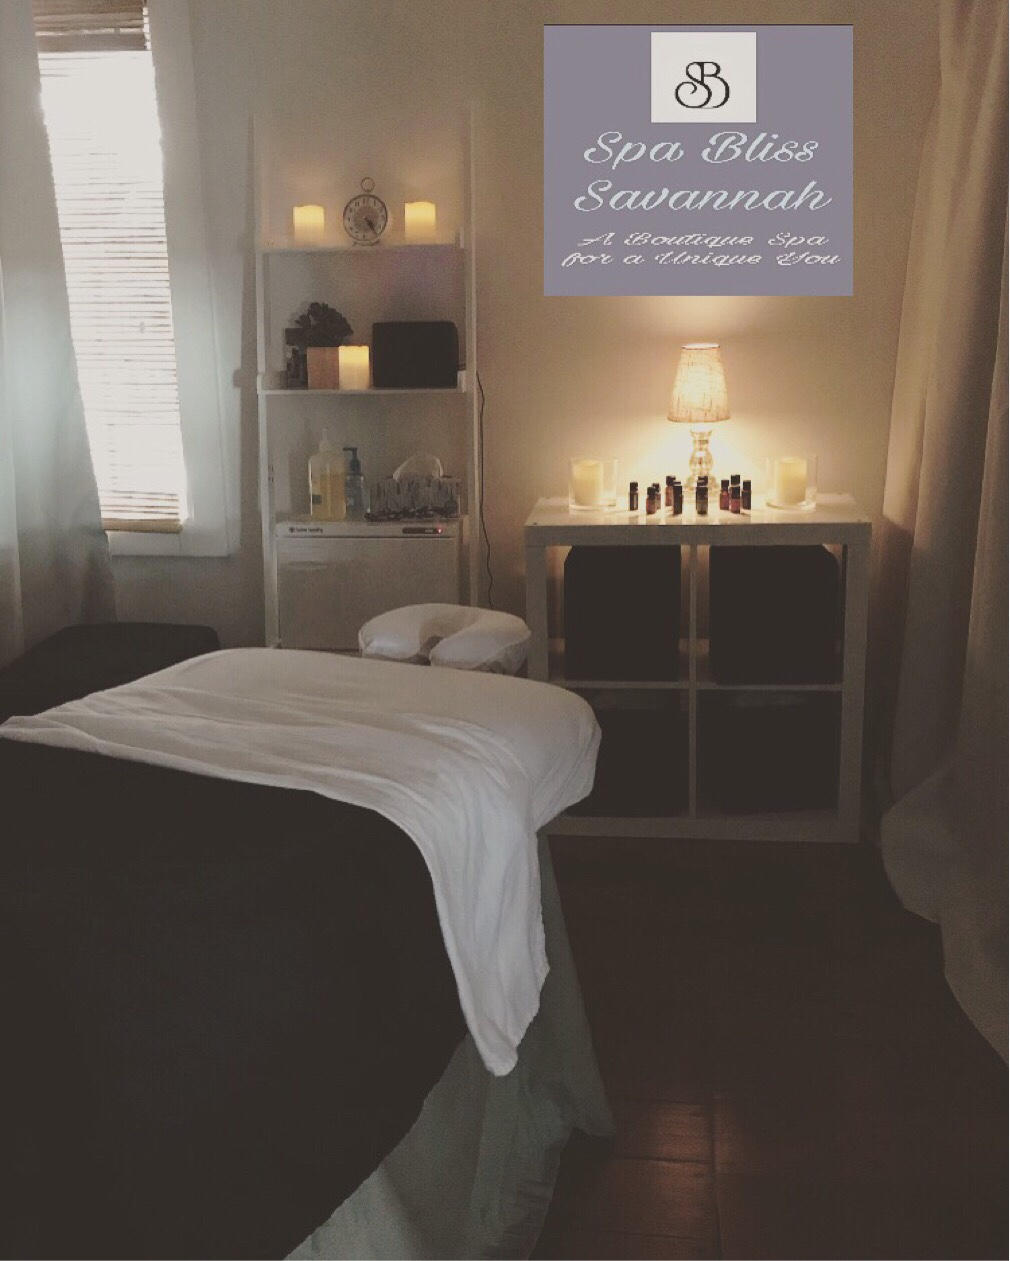 Spa Bliss Savannah In Savannah GA | Vagaro